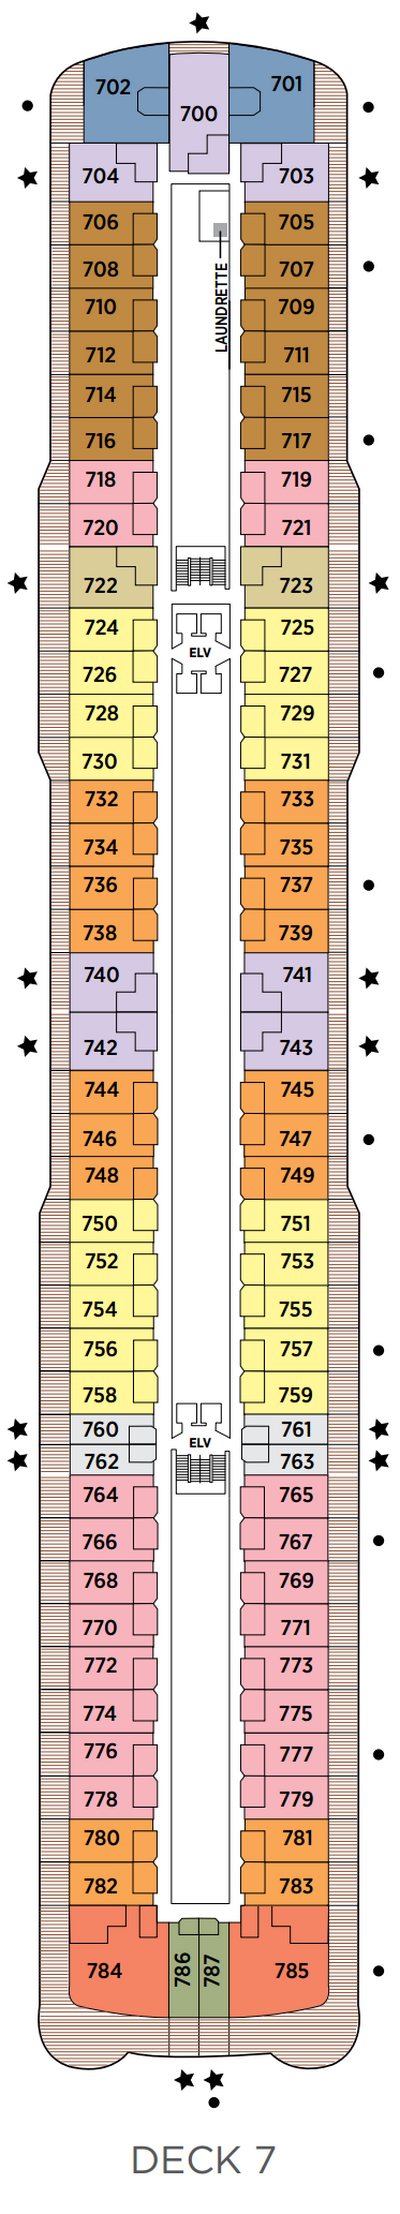 Seven Seas Splendor Deck 7 layout